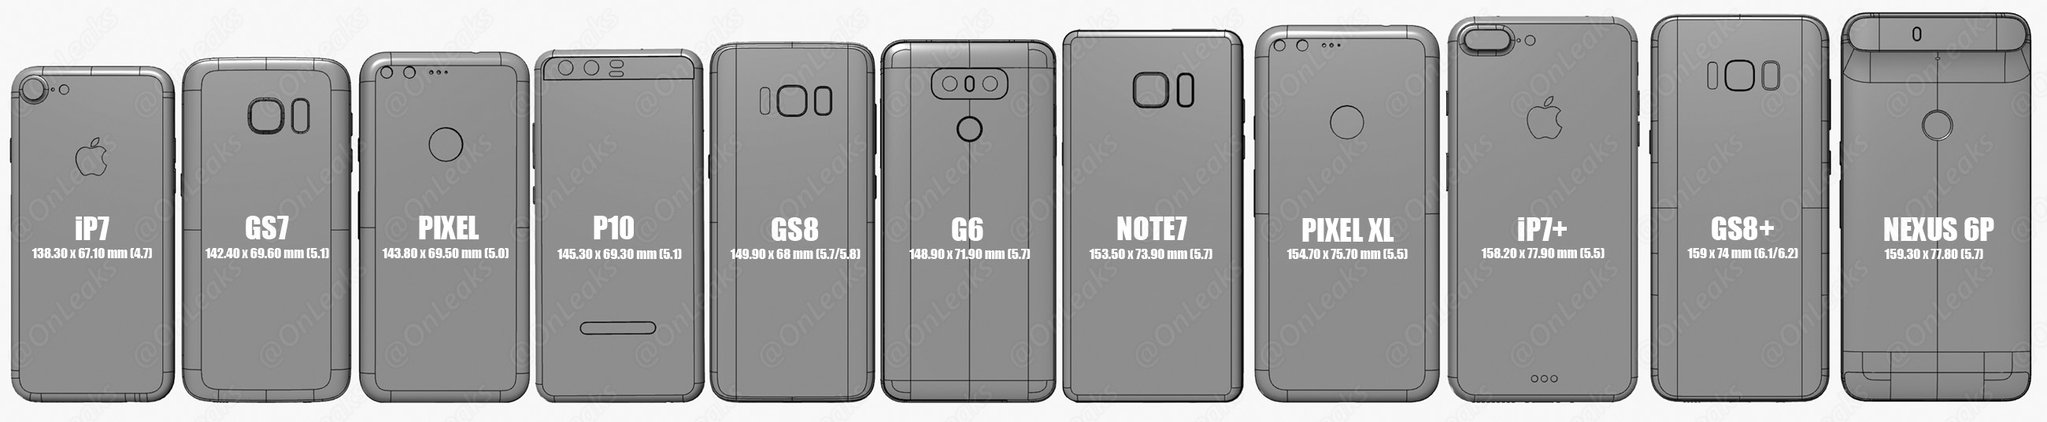 galaxy-s8-s8-size-comparison